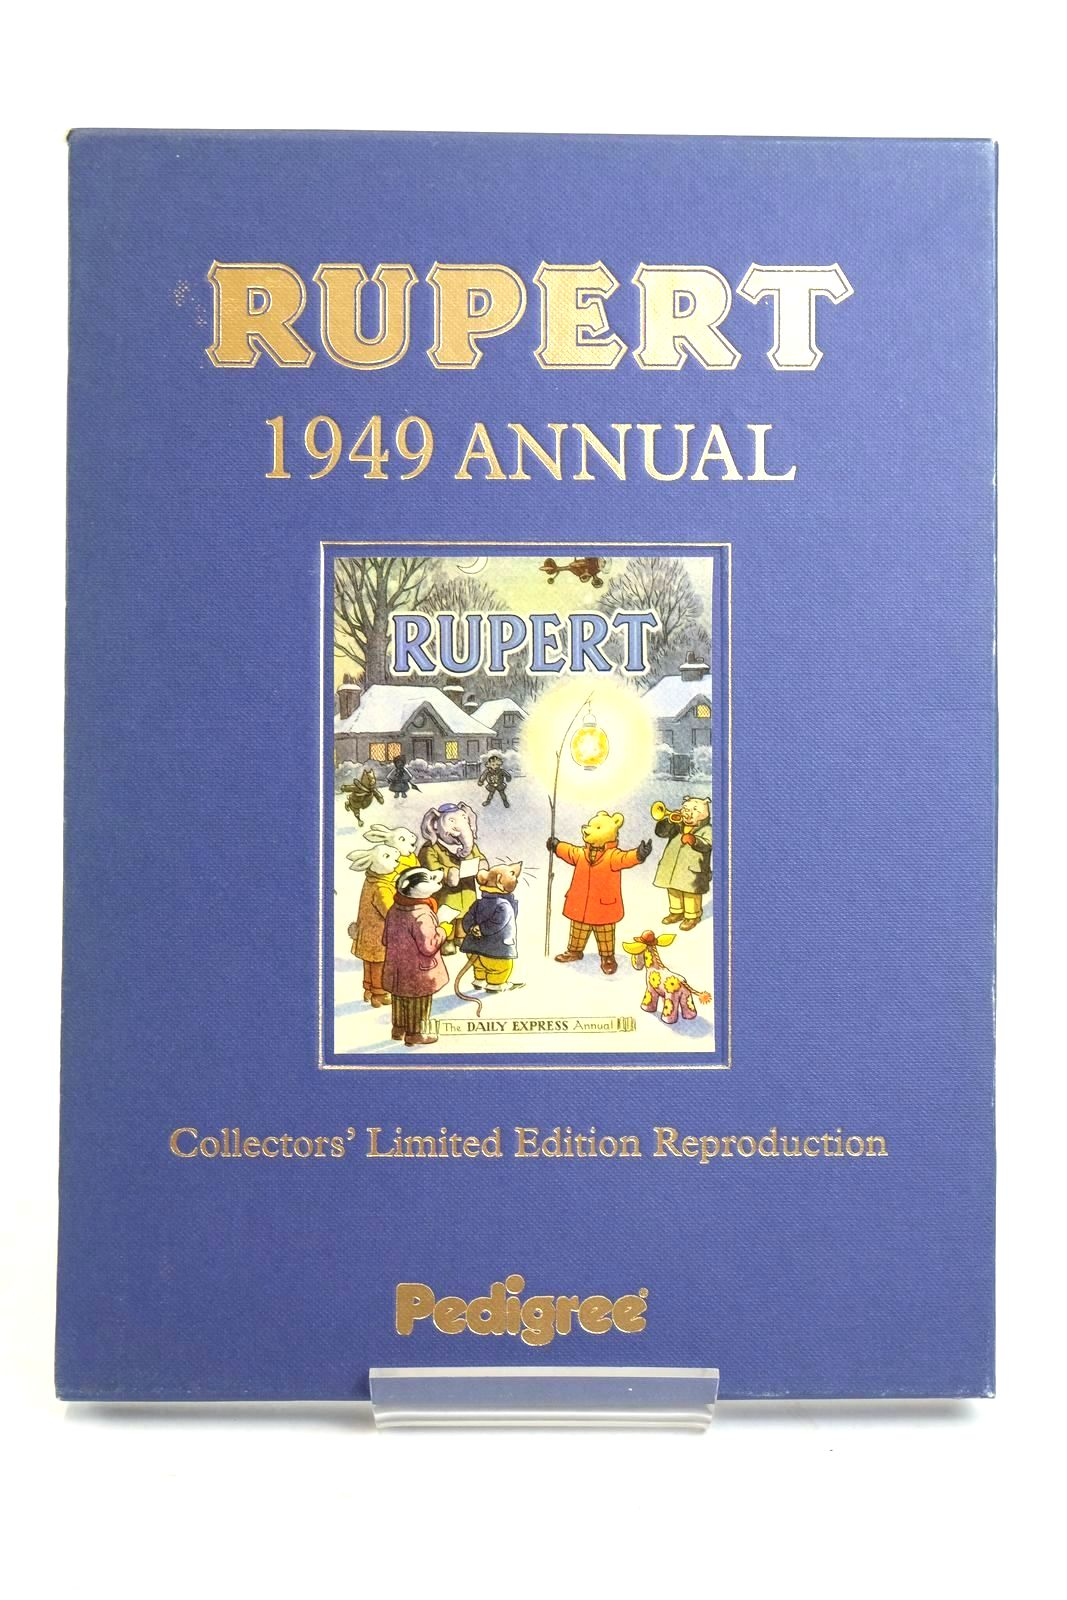 Photo of RUPERT ANNUAL 1949 (FACSIMILE) written by Bestall, Alfred illustrated by Bestall, Alfred published by Pedigree Books Limited (STOCK CODE: 1319408)  for sale by Stella & Rose's Books